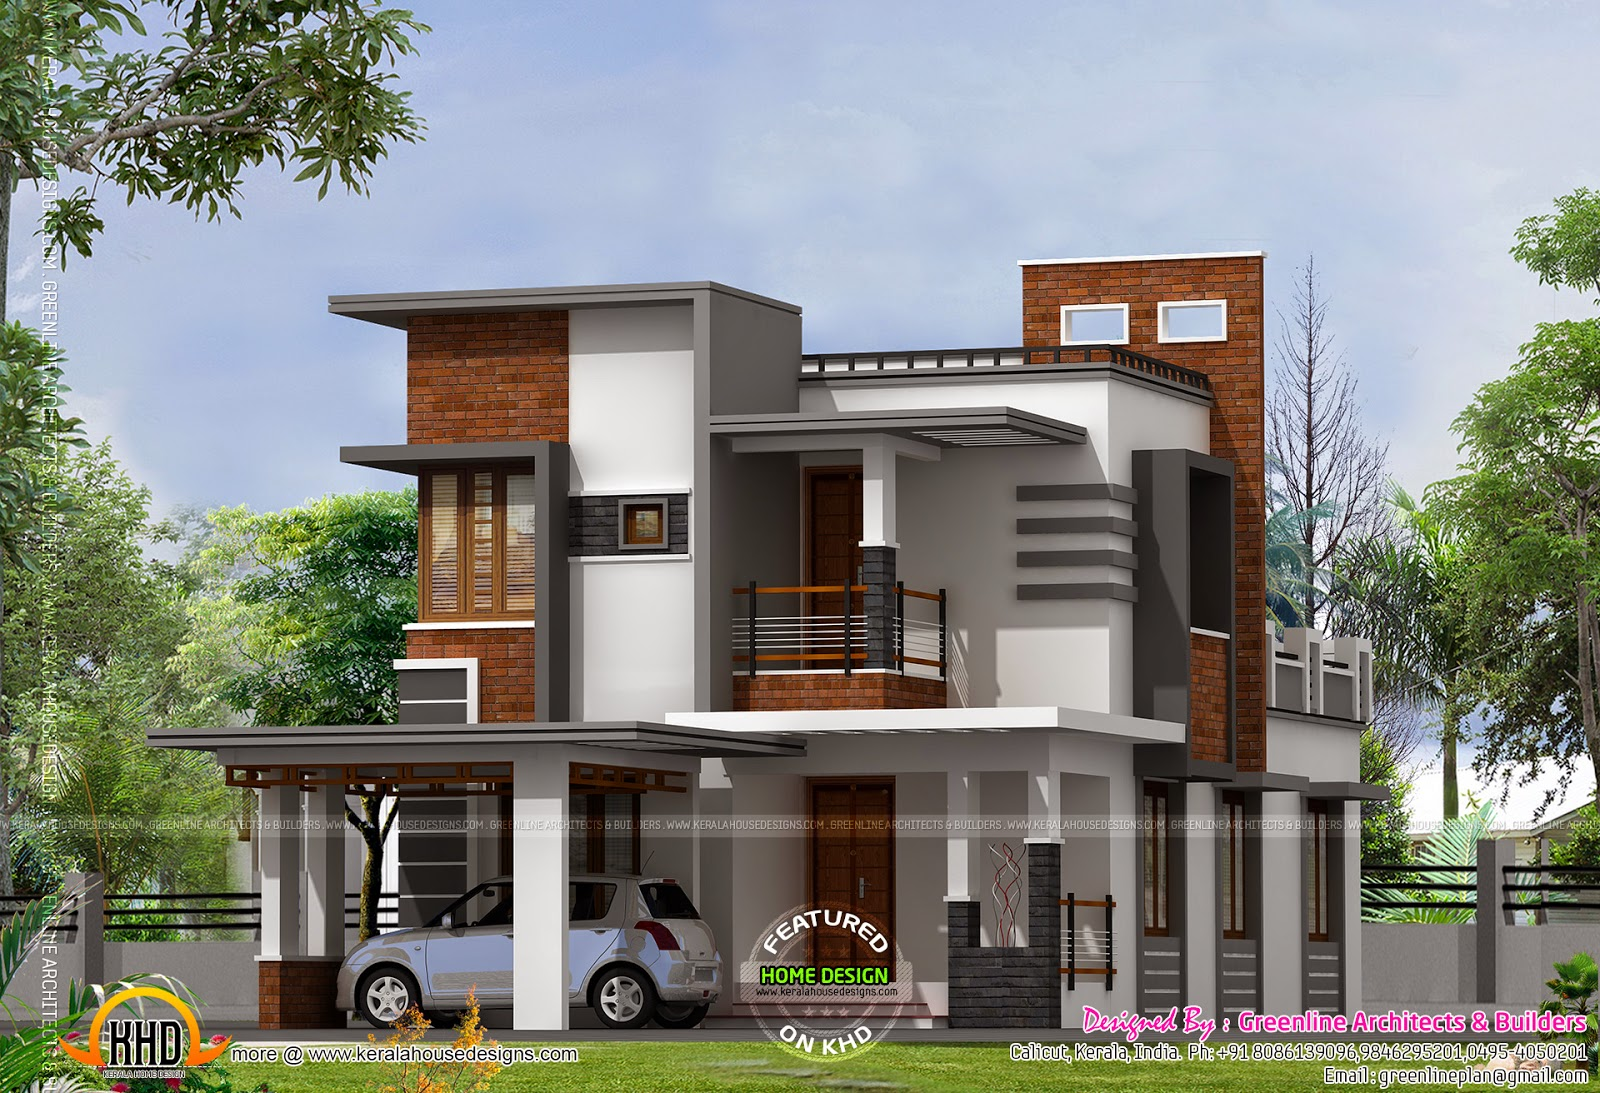 Low Cost Contemporary House Kerala Home Design And Floor: low cost modern homes